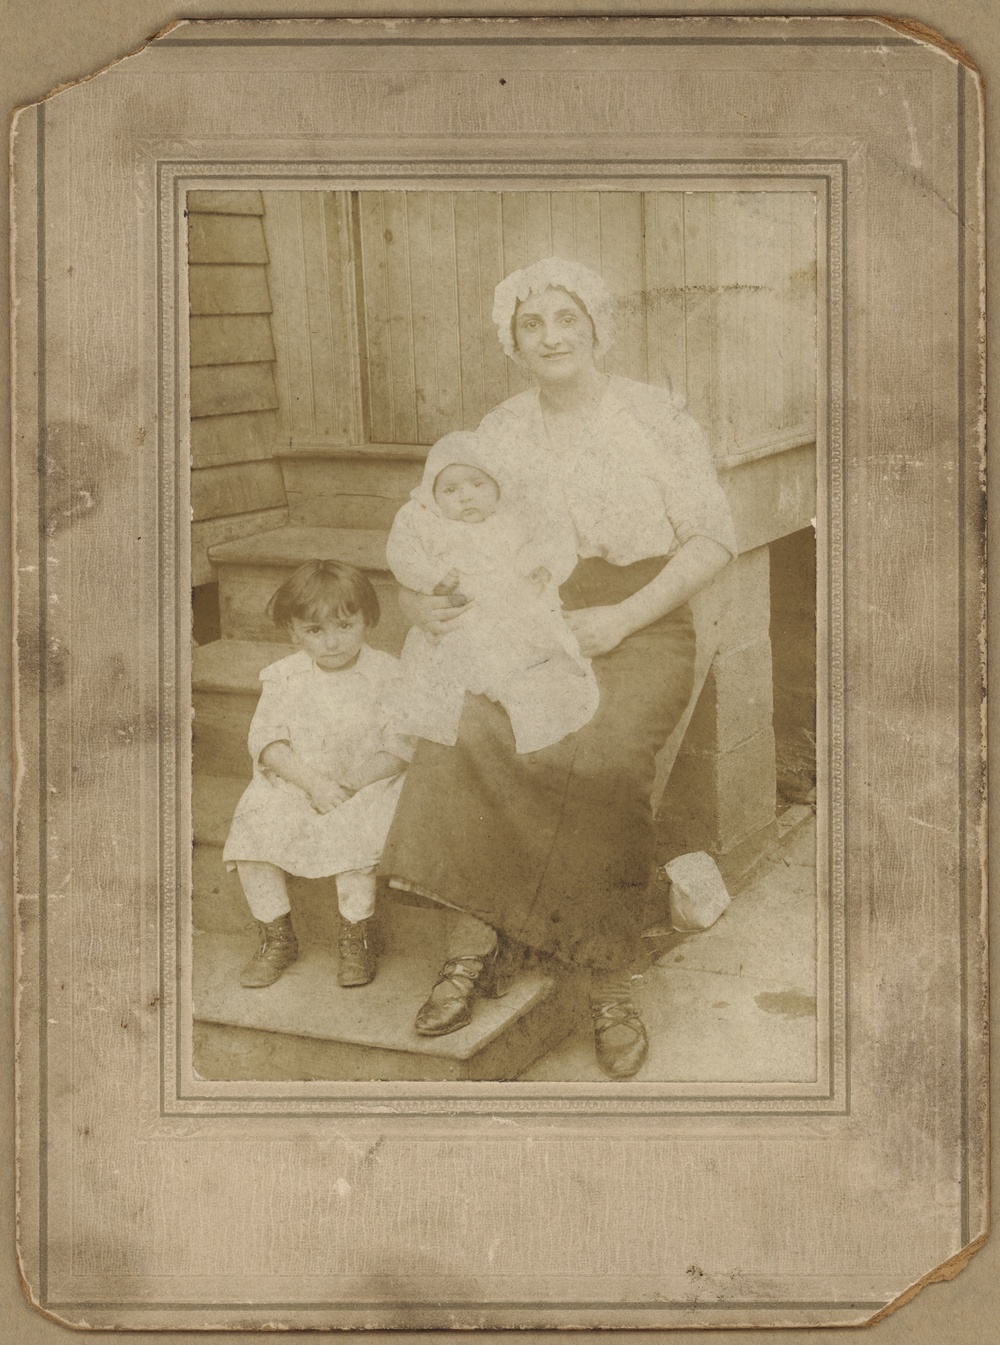 1920s Bayonne, NJ Lucy Acquiste [mother], oldest daughter Mildred, in arms Rosalie [my grandmother].